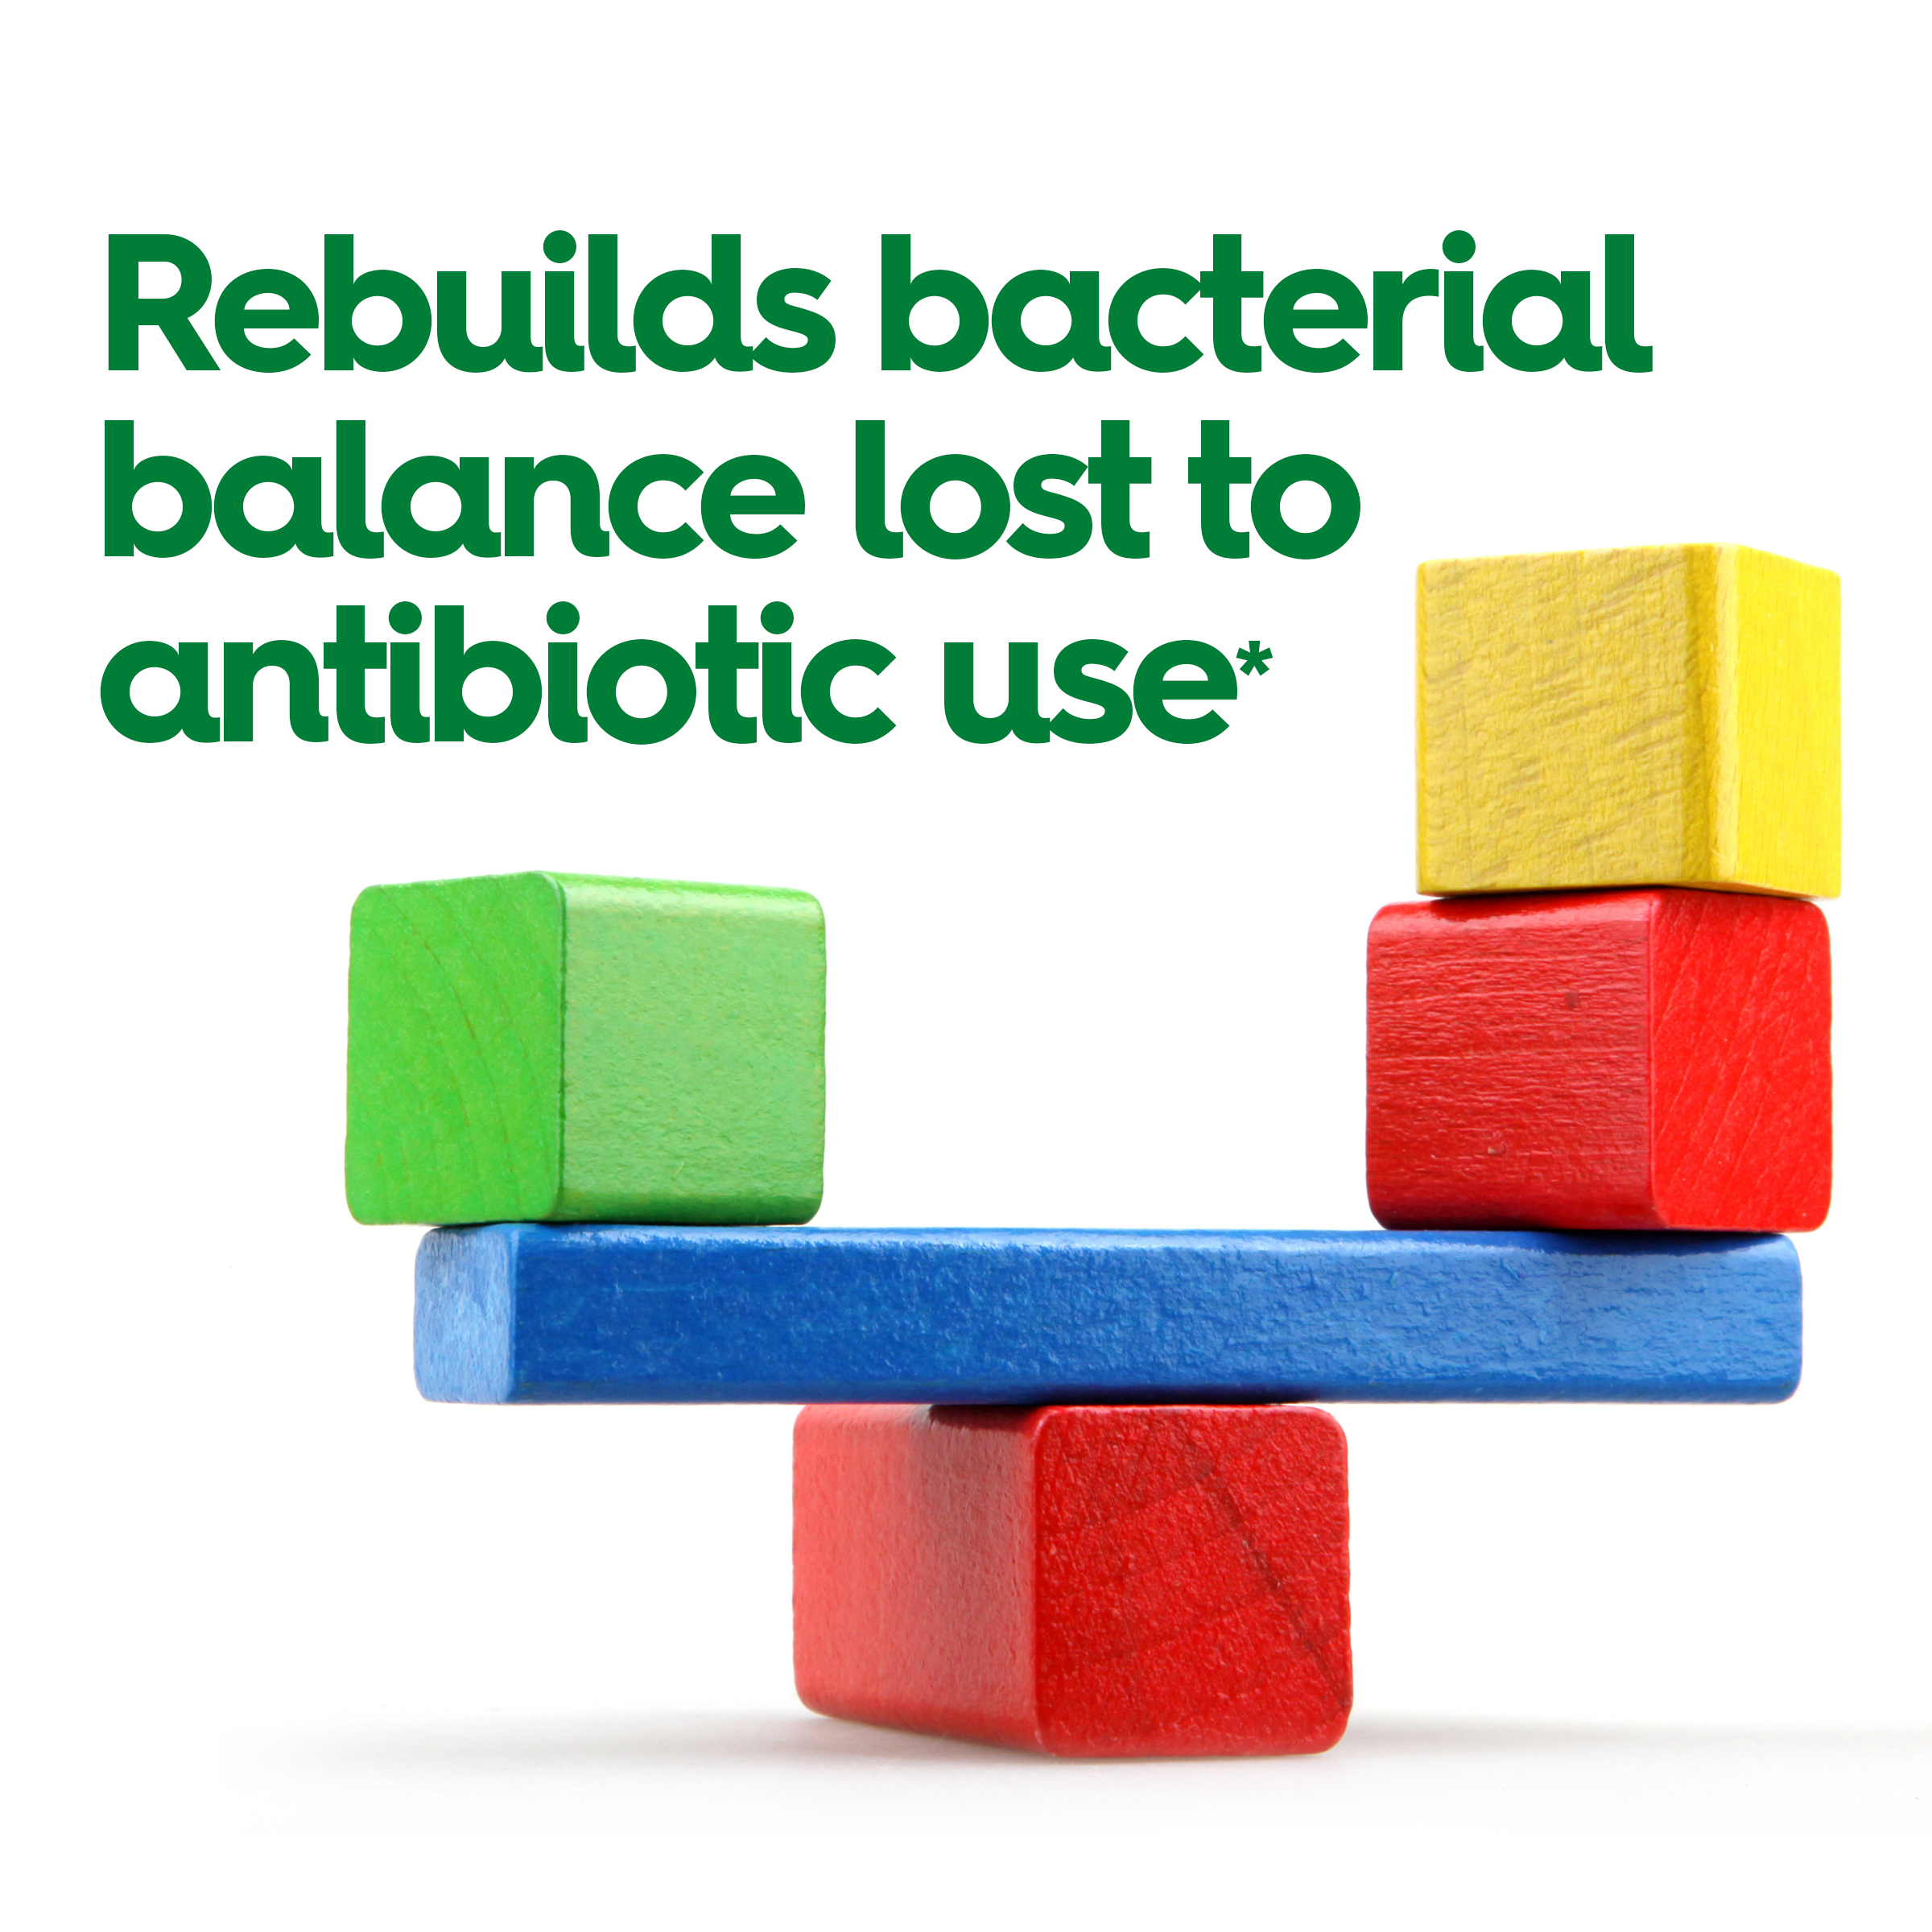 Rebuilds bacterial balance lost to antibiotic use*